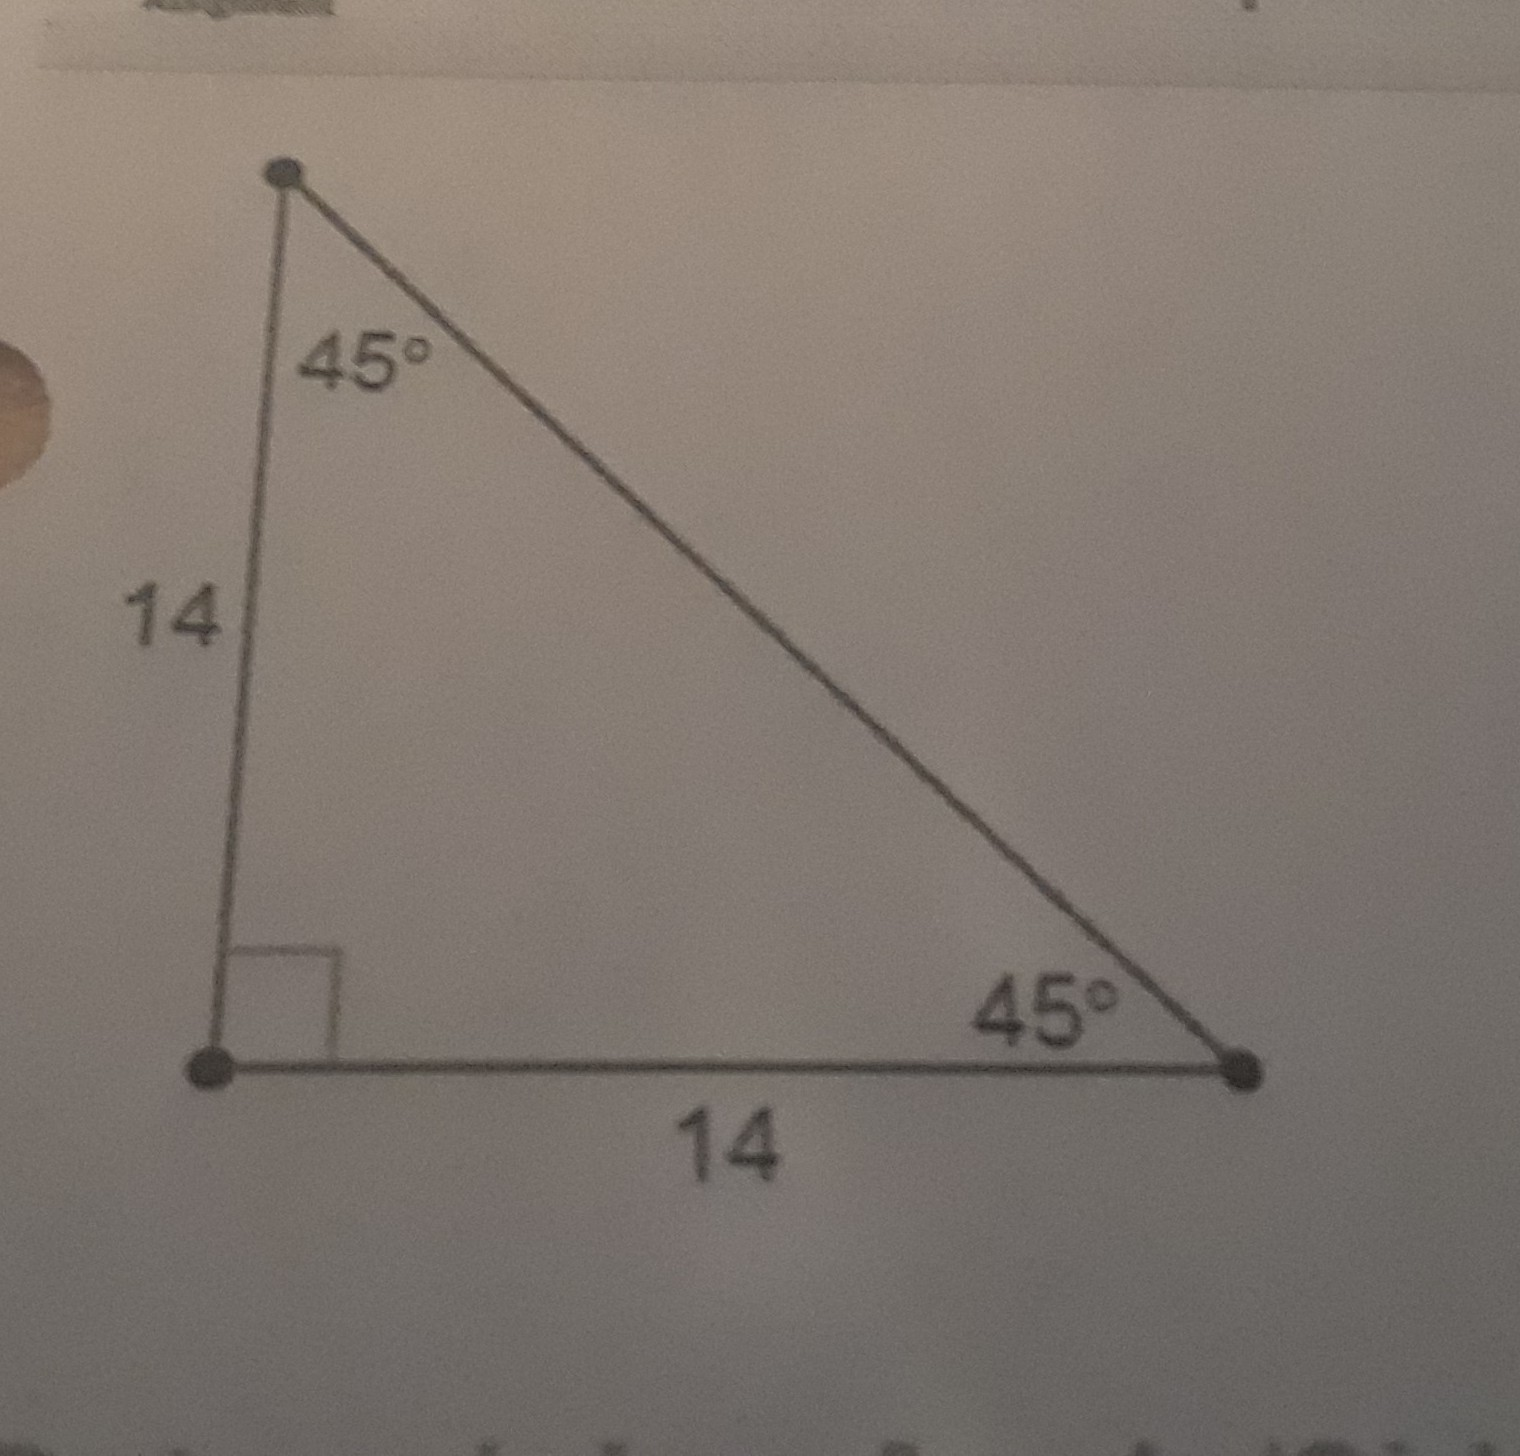 Each Leg Of A 45 45 90 Triangle Measures 14 Cm What